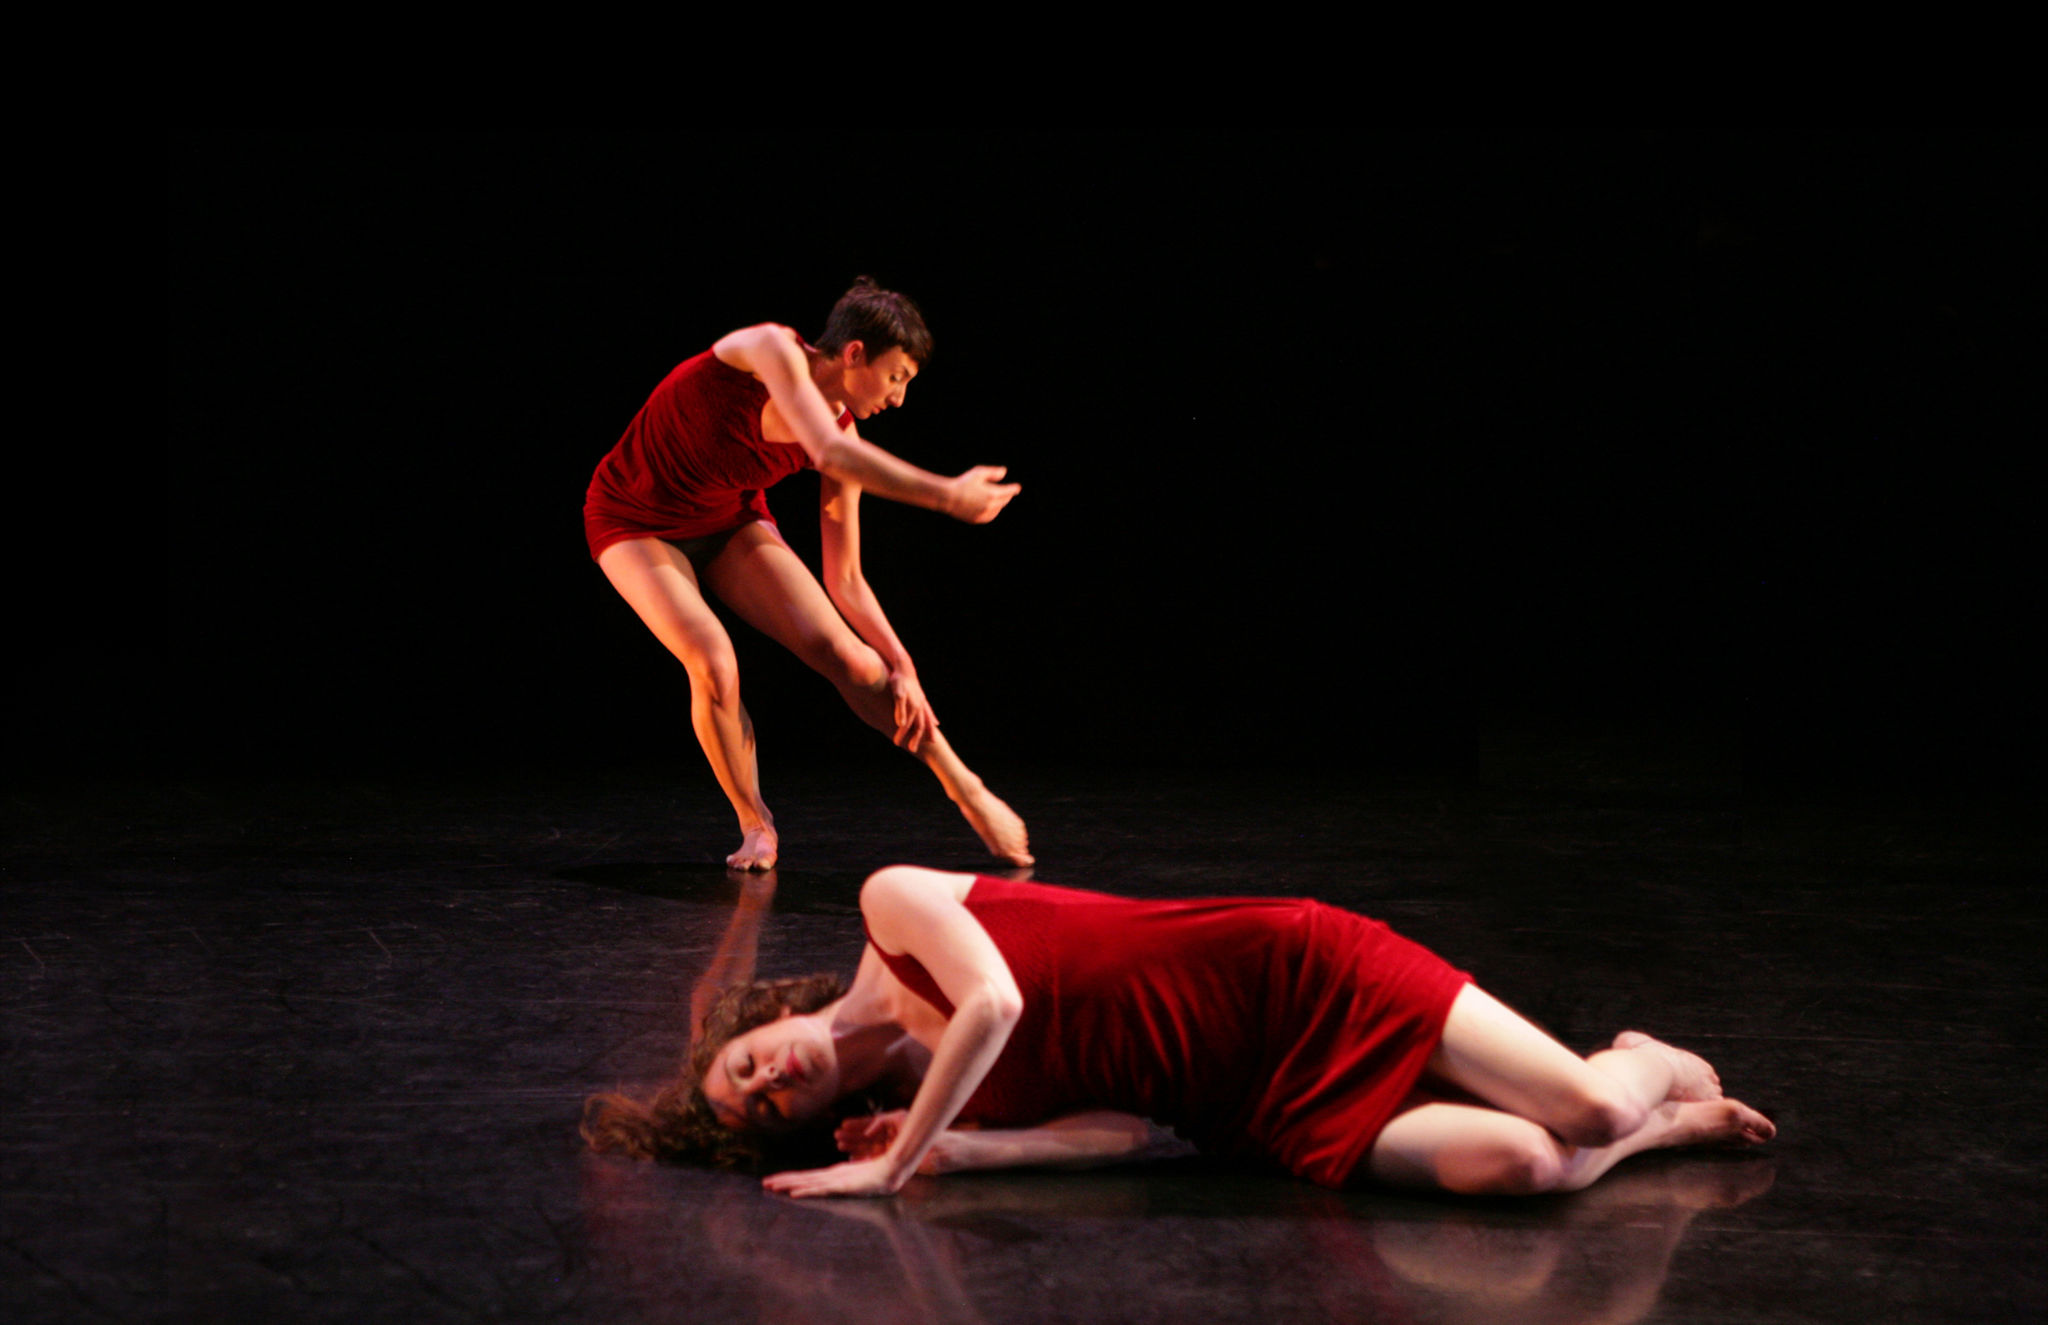 The odalisque (Molly Mingey) and her dream (Mauriah Kraker). Photo courtesy of Wild Space Dance Company.